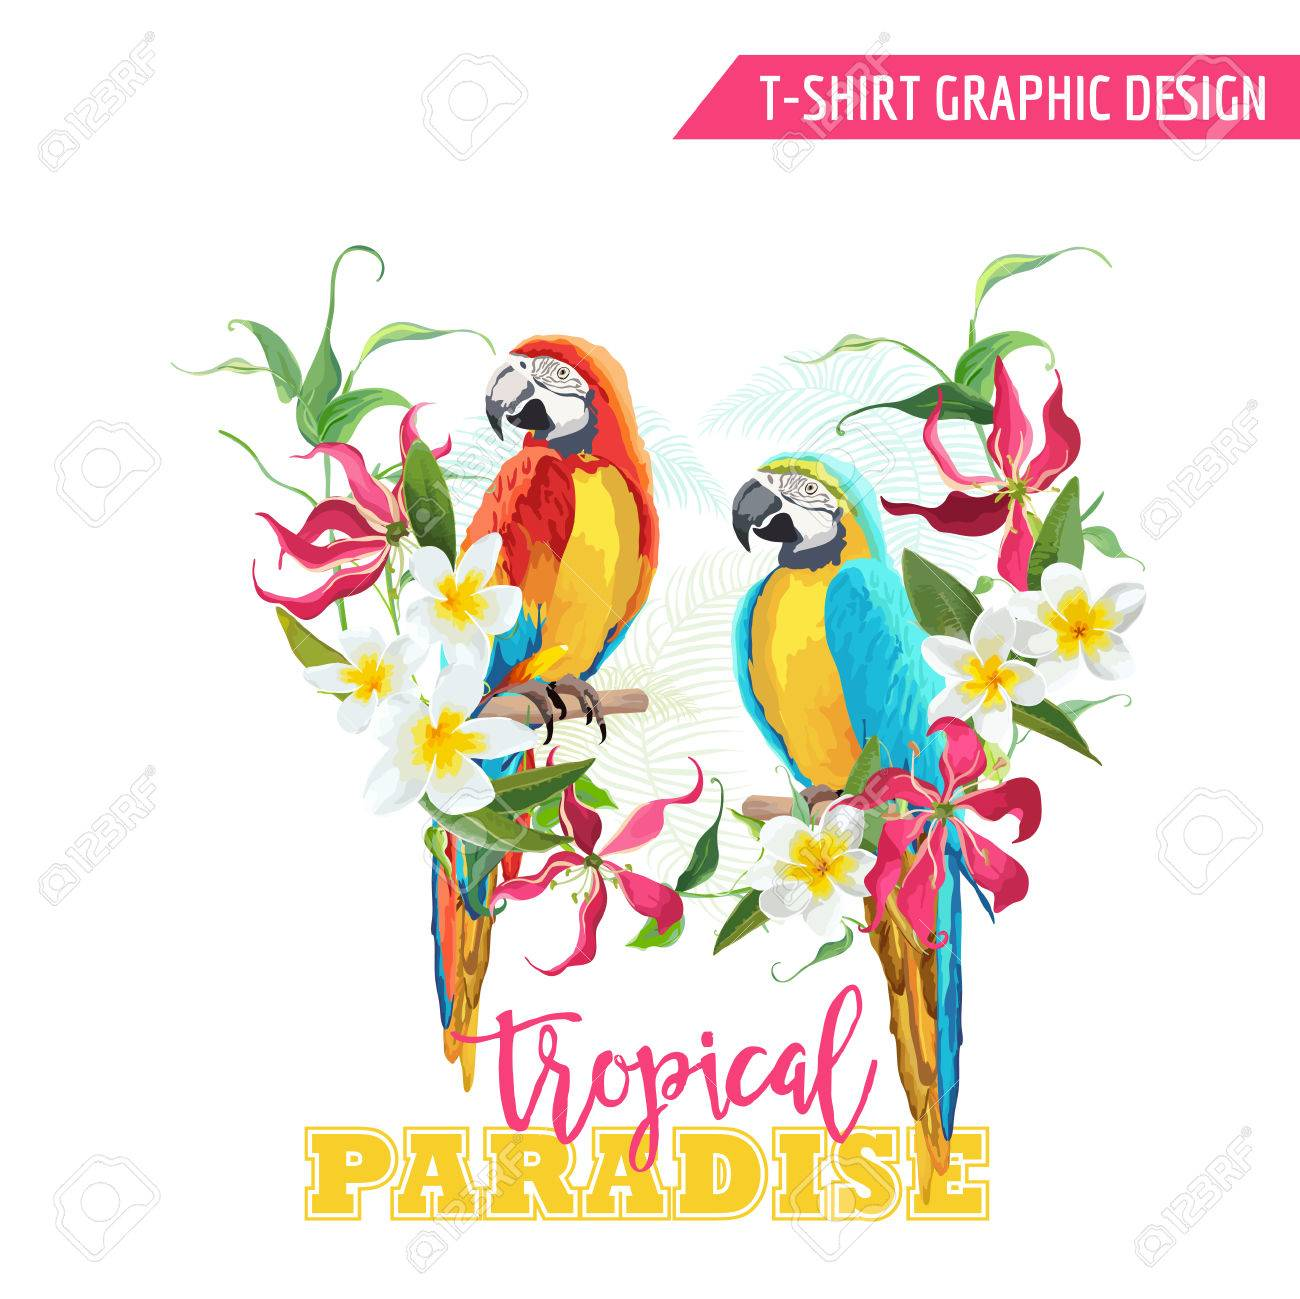 t-shirts with bird designs